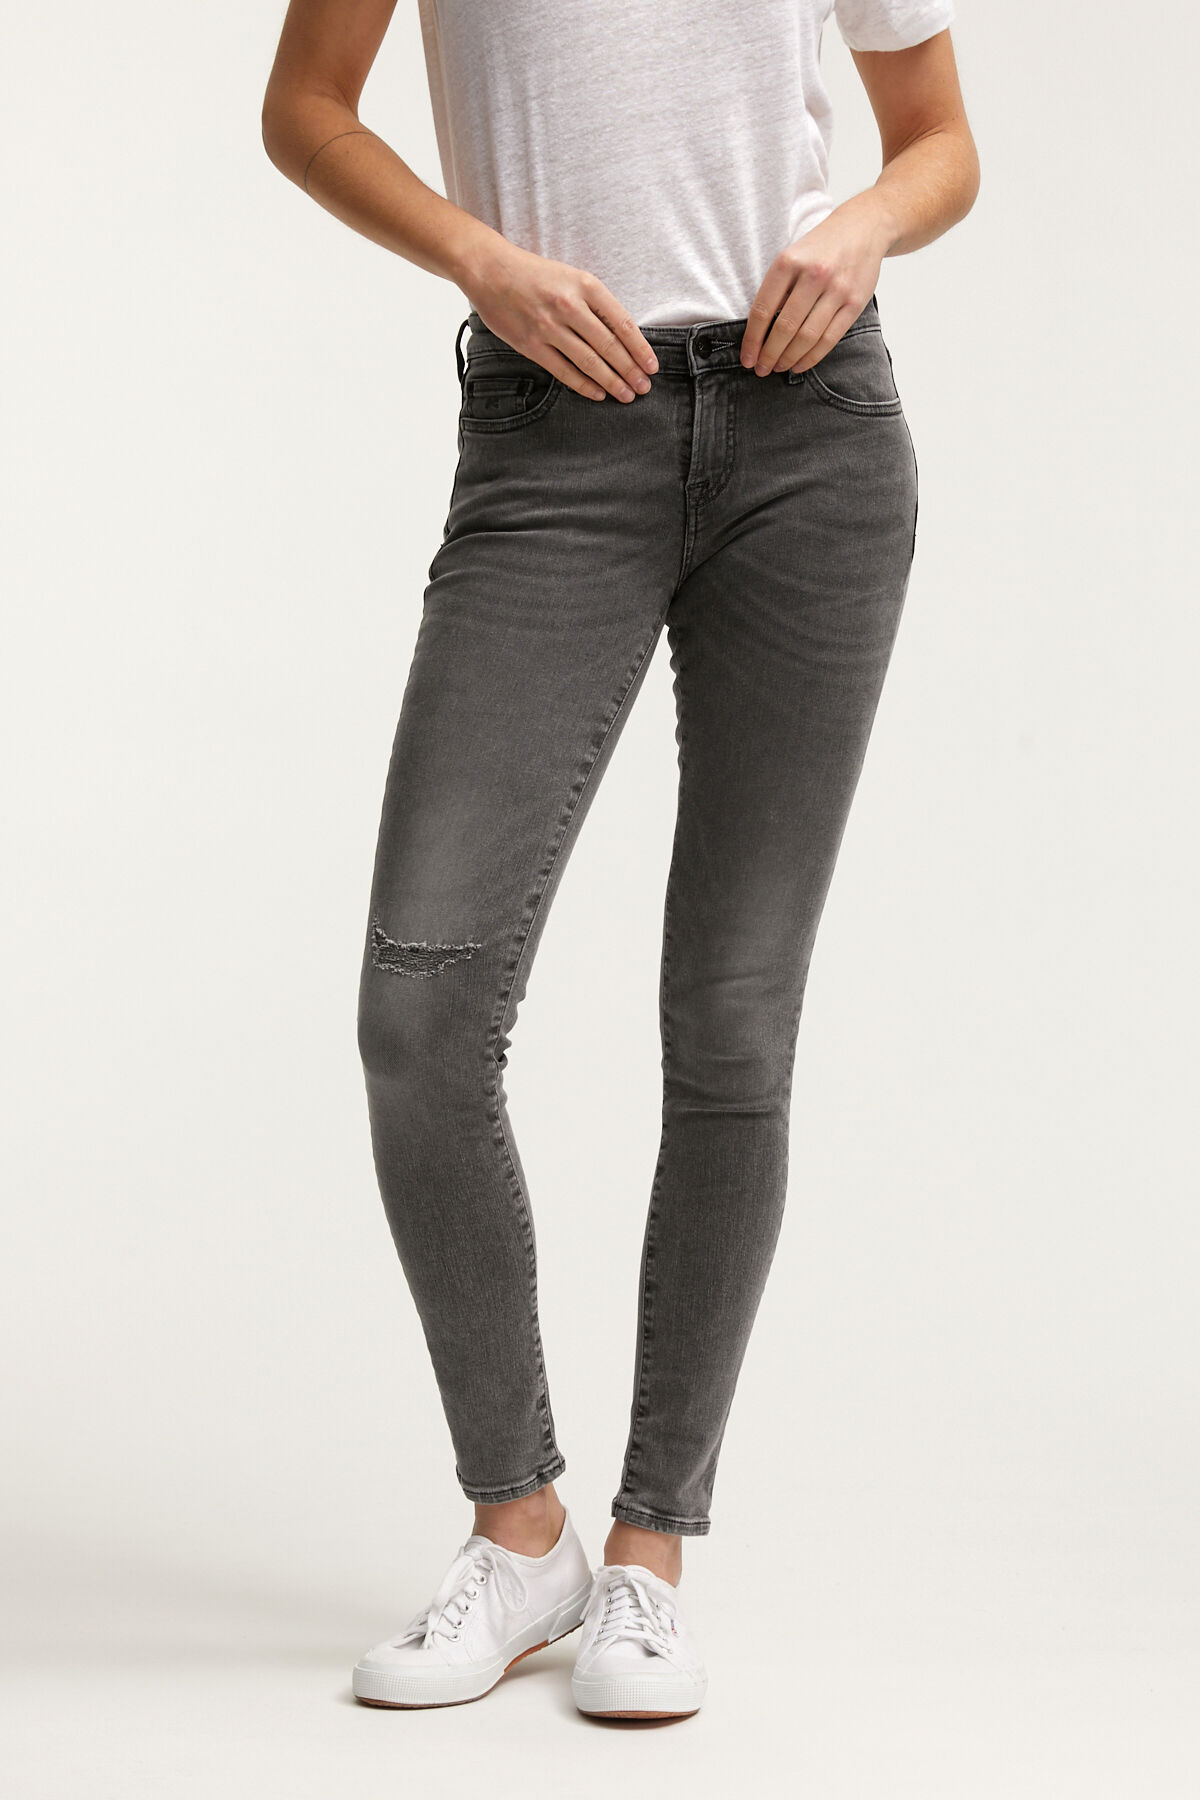 SPRAY Three-Year Grey  Denim  - Mid-rise, Tight FIt